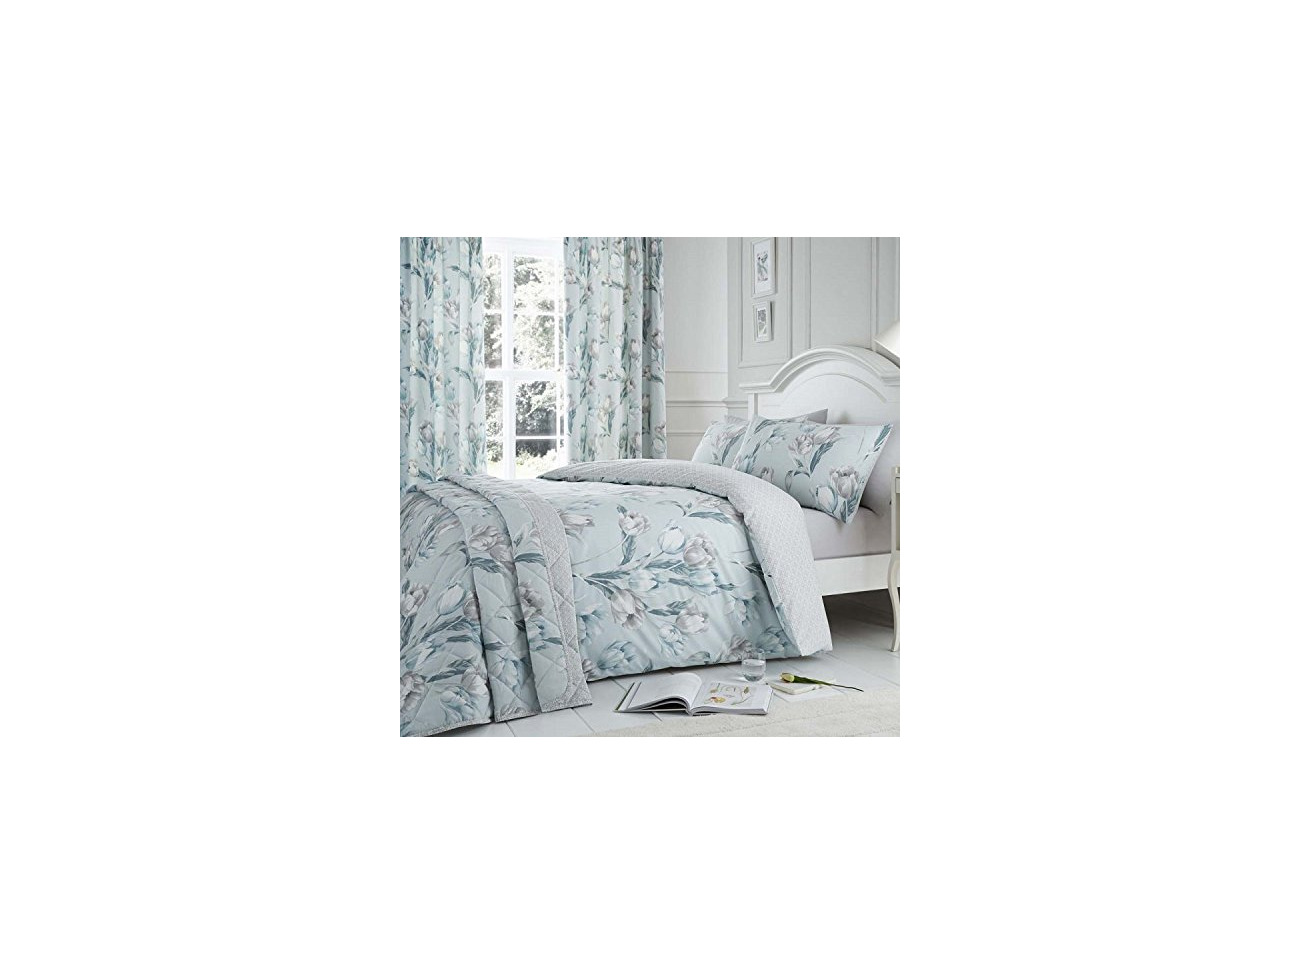 Duck Egg Tulip Easy Care Duvet Cover Set Dreams /& Drapes King